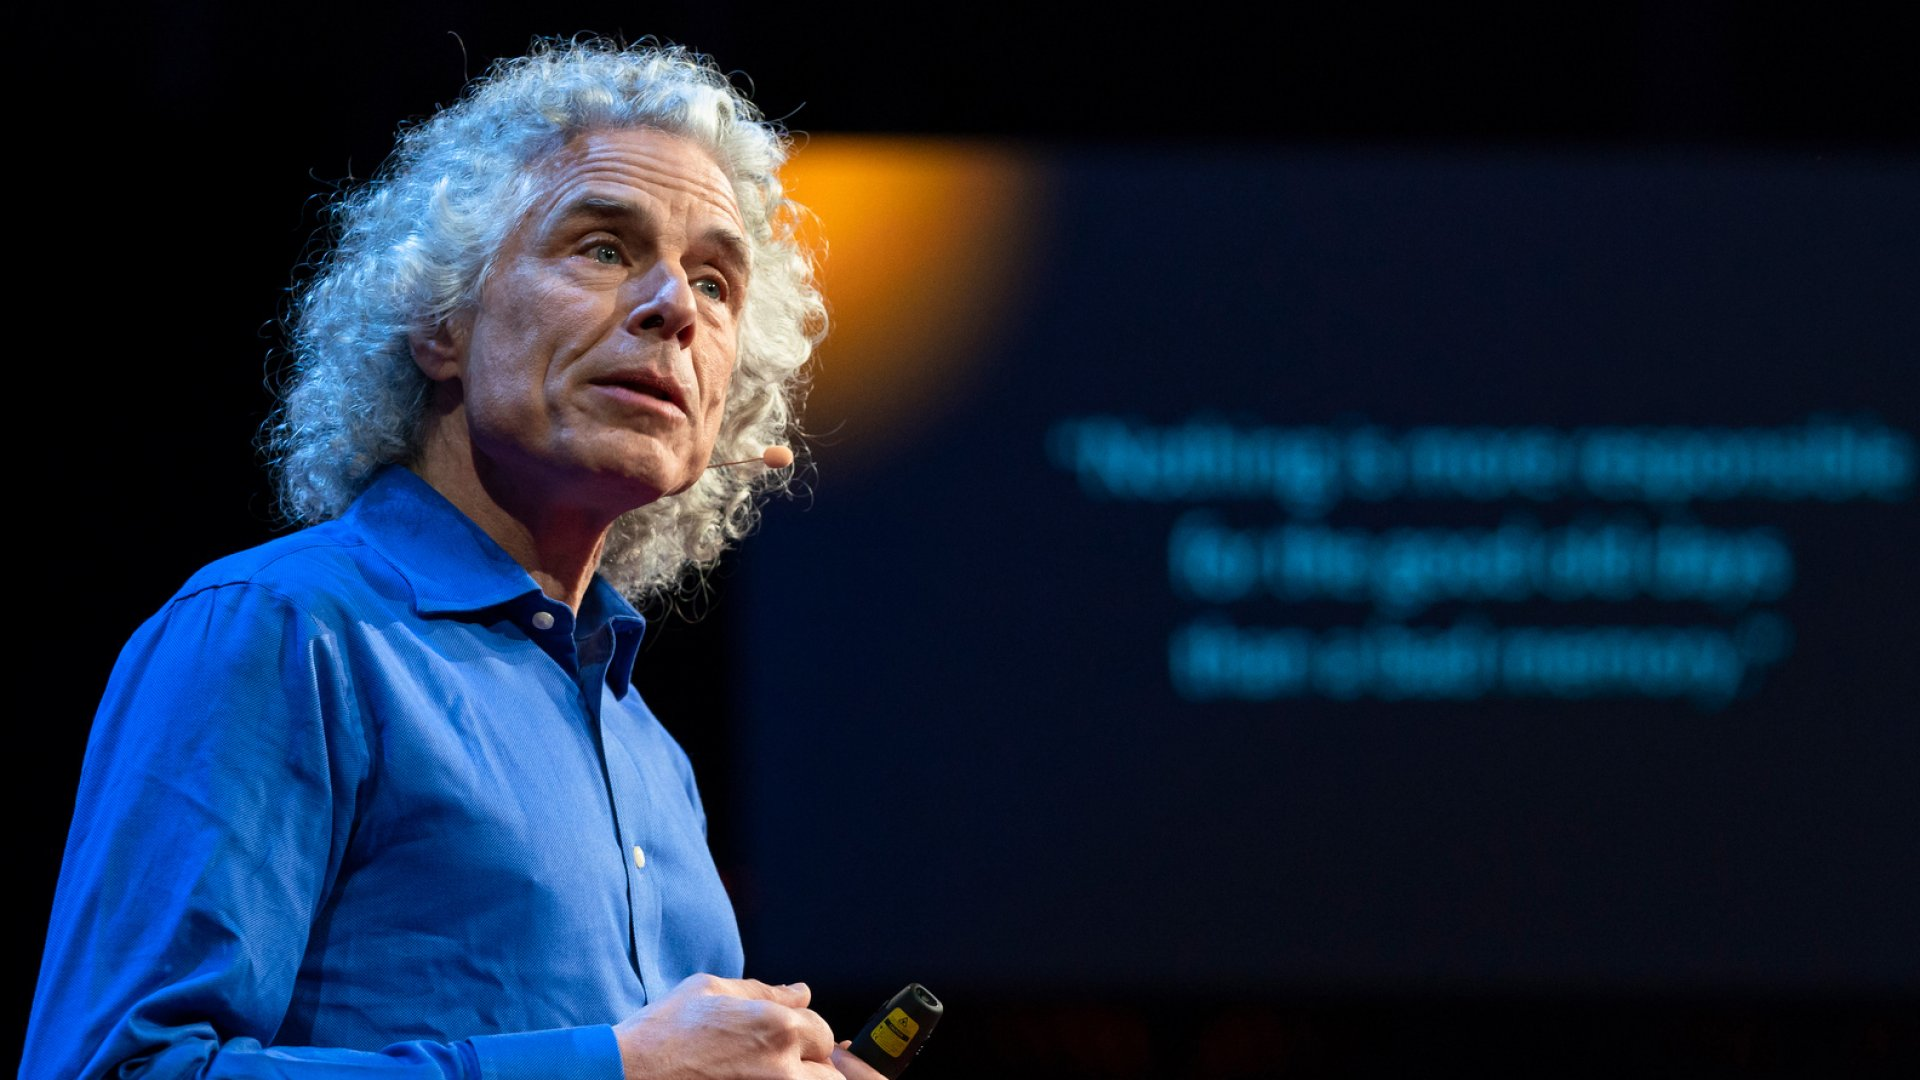 Steven Pinker speaks at TED2018 in Vancouver, BC, Canada.